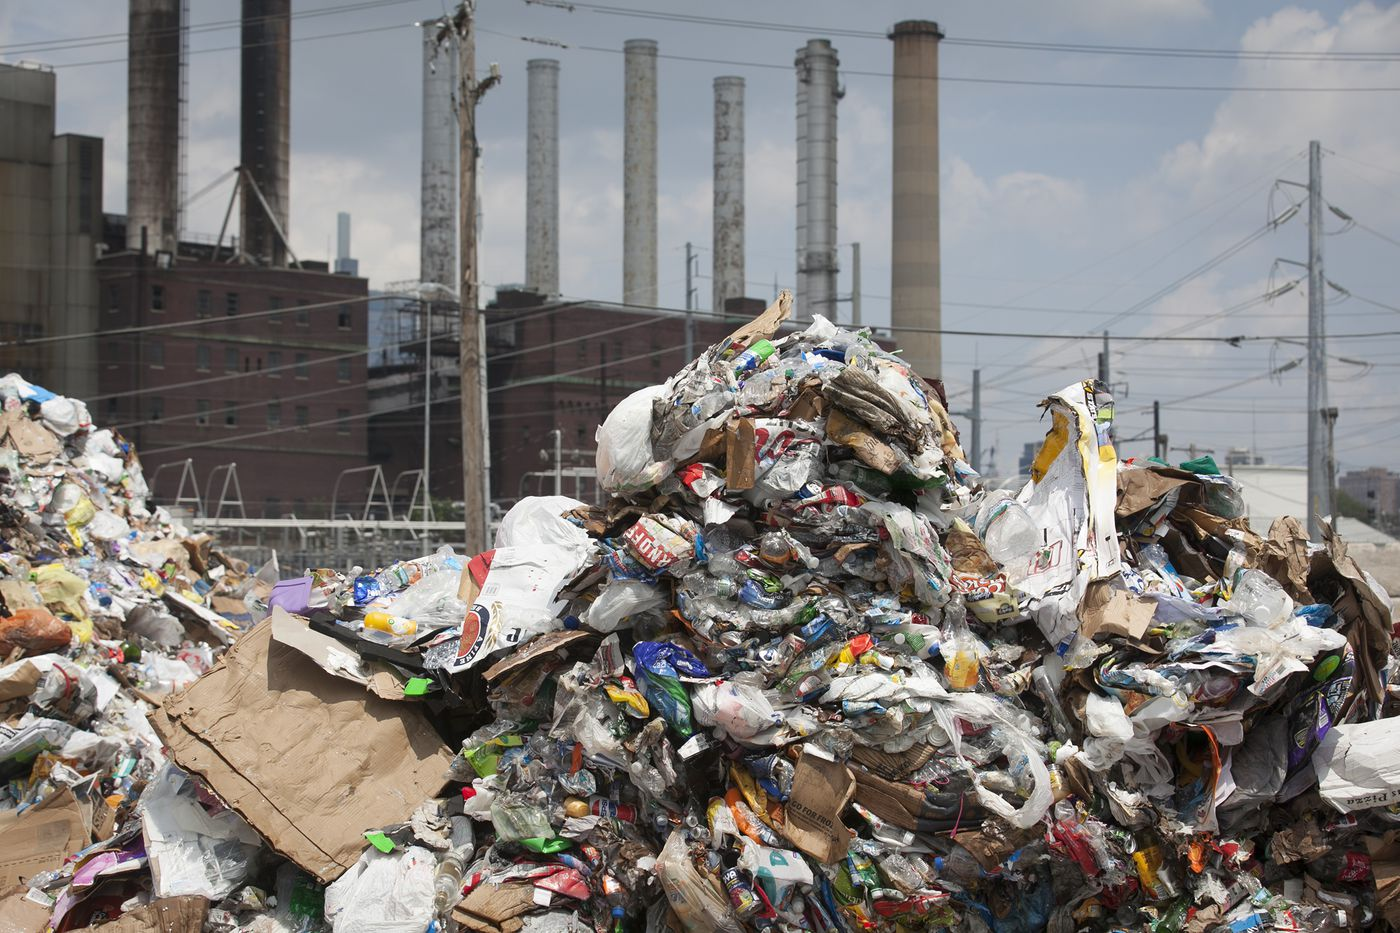 Philadelphia should step up recycling   Editorial